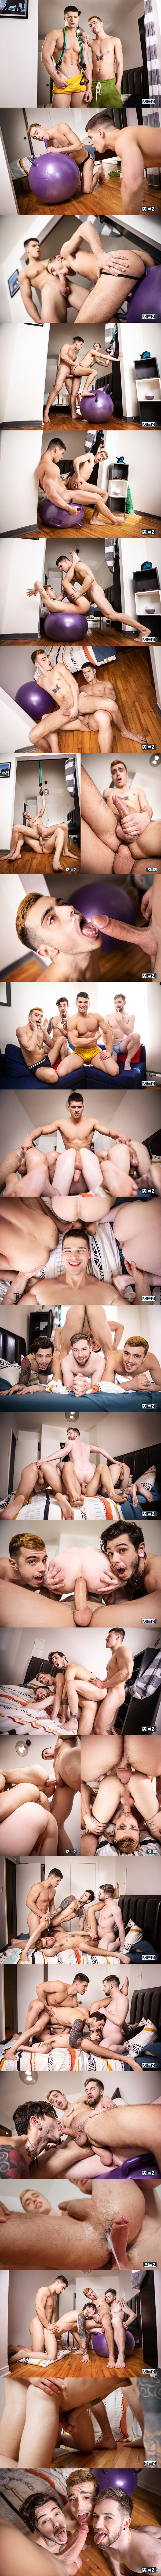 Handsome Canadian straight hunk Malik Delgaty barebacks twink Sean Peek, Thyle Knoxx and Dex Parker before he fucks the cum out of Sean and Dex in Gawkers Uncut at Men 01